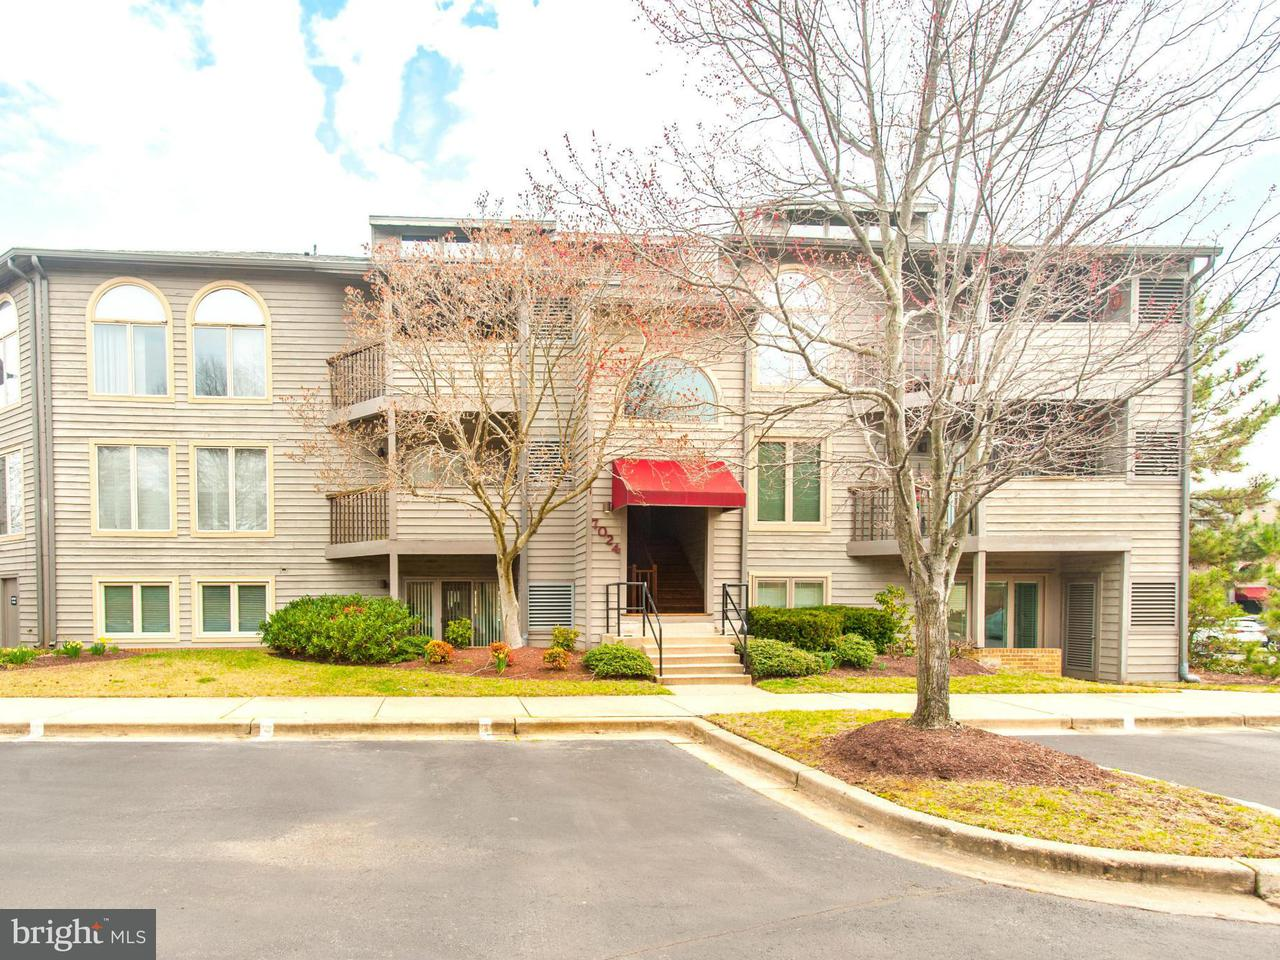 Duplex for Sale at 7024 CHANNEL VILLAGE CT #202 7024 CHANNEL VILLAGE CT #202 Annapolis, Maryland 21403 United States